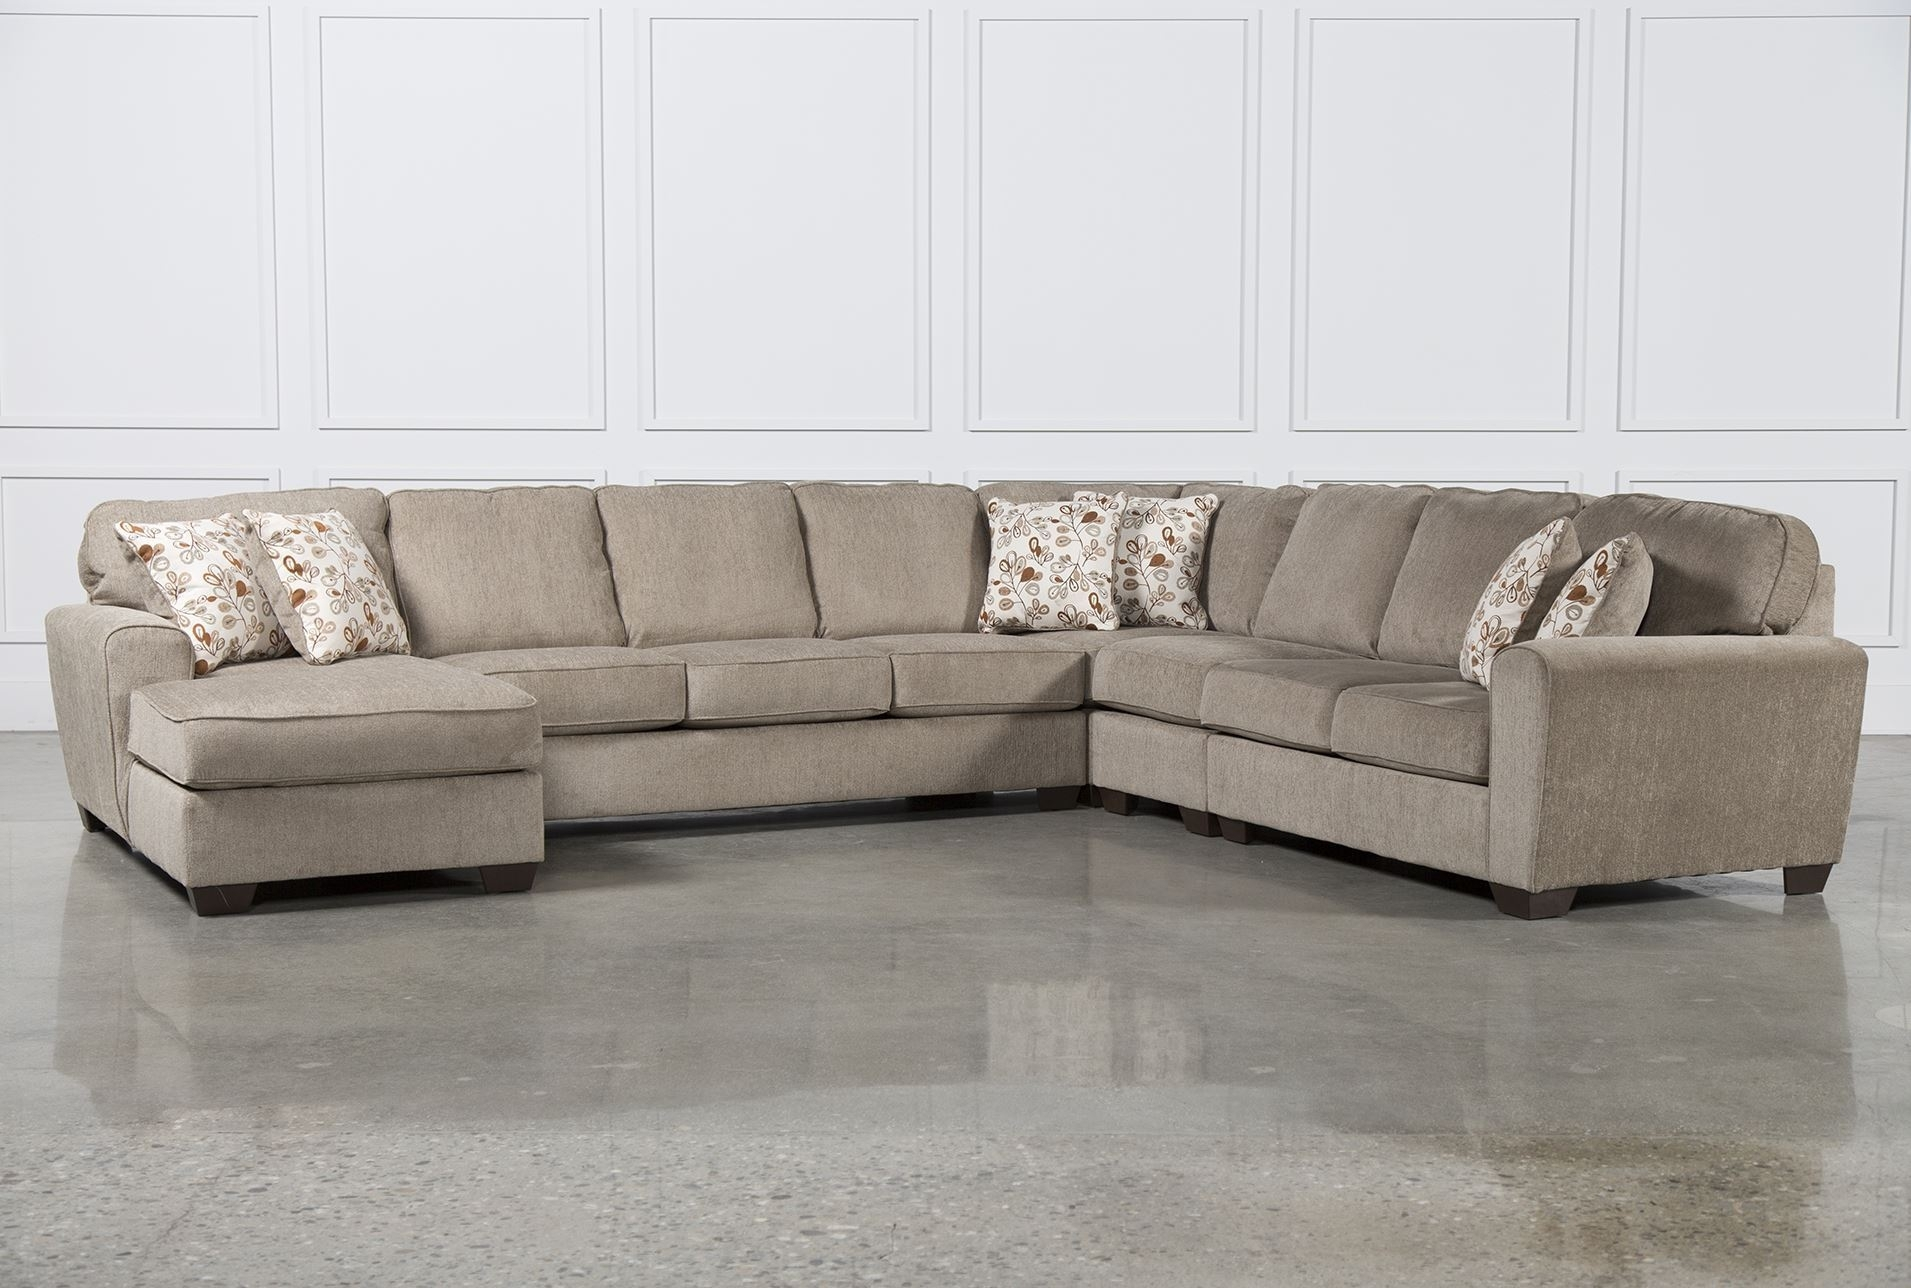 Ideas Of Laf Chaise On Kerri 2 Piece Sectional W Laf Chaise Living with Kerri 2 Piece Sectionals With Raf Chaise (Image 14 of 30)